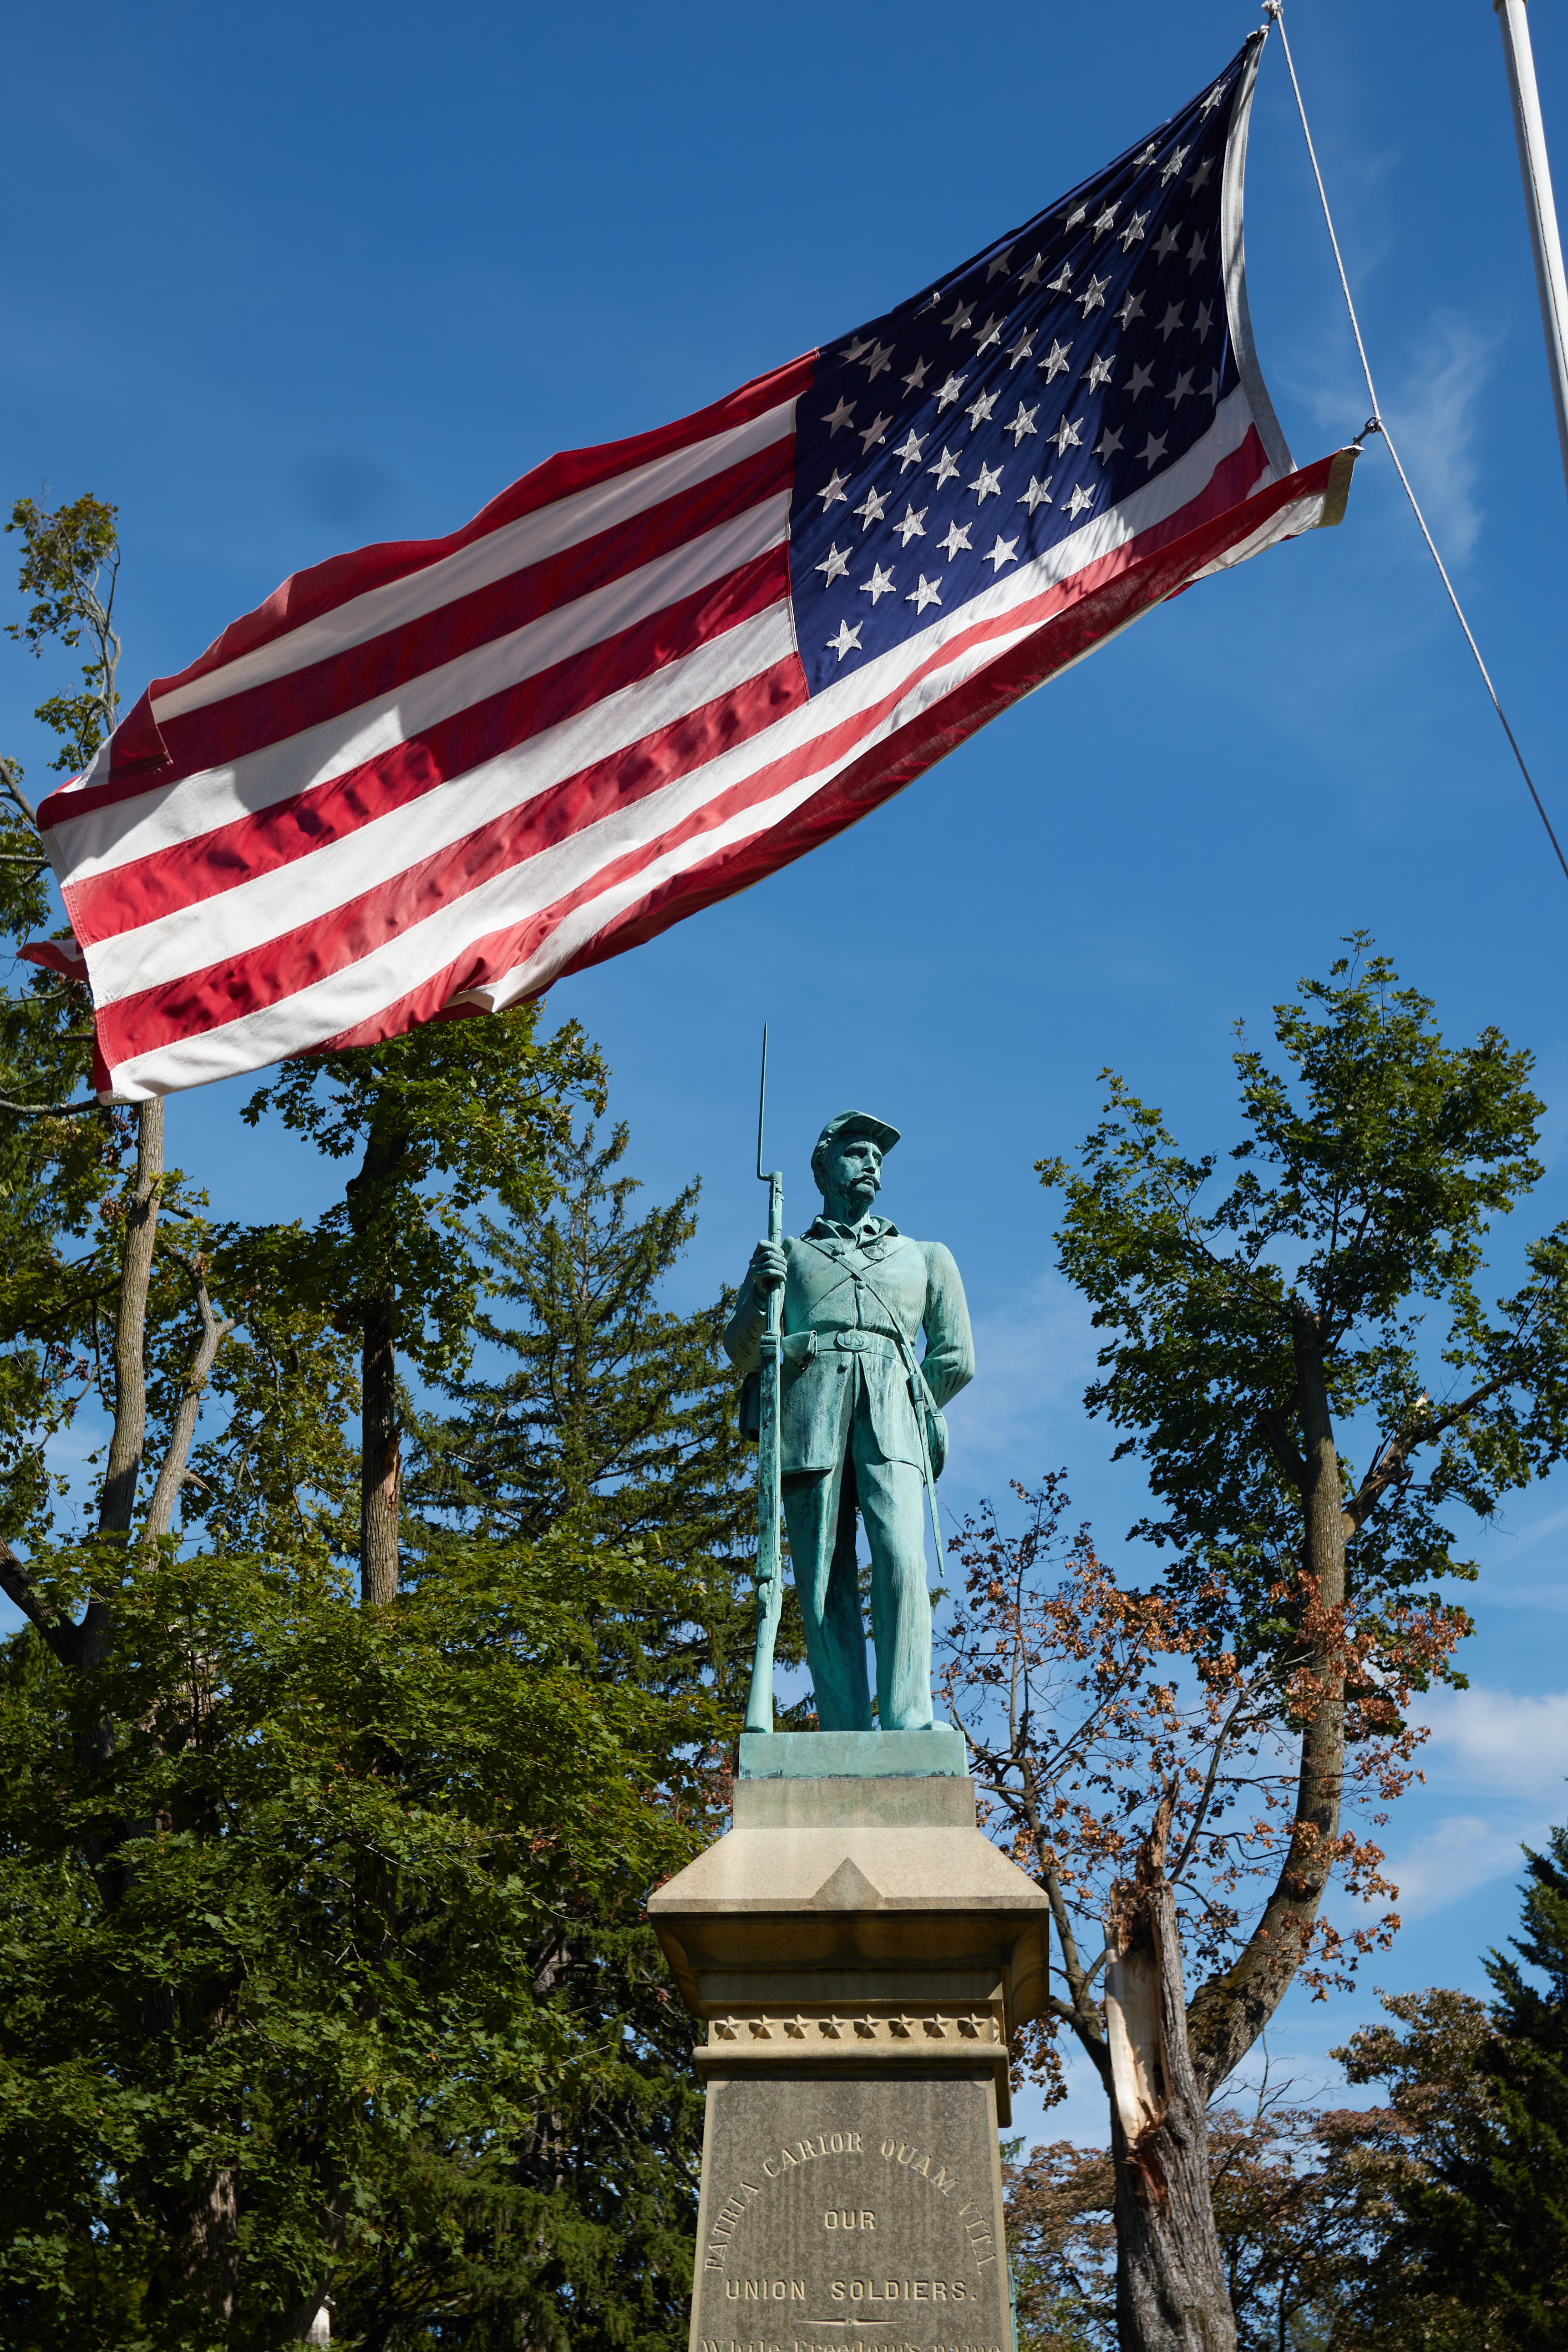 Civil war Monument, with American flag flying above sculpture of soldier.